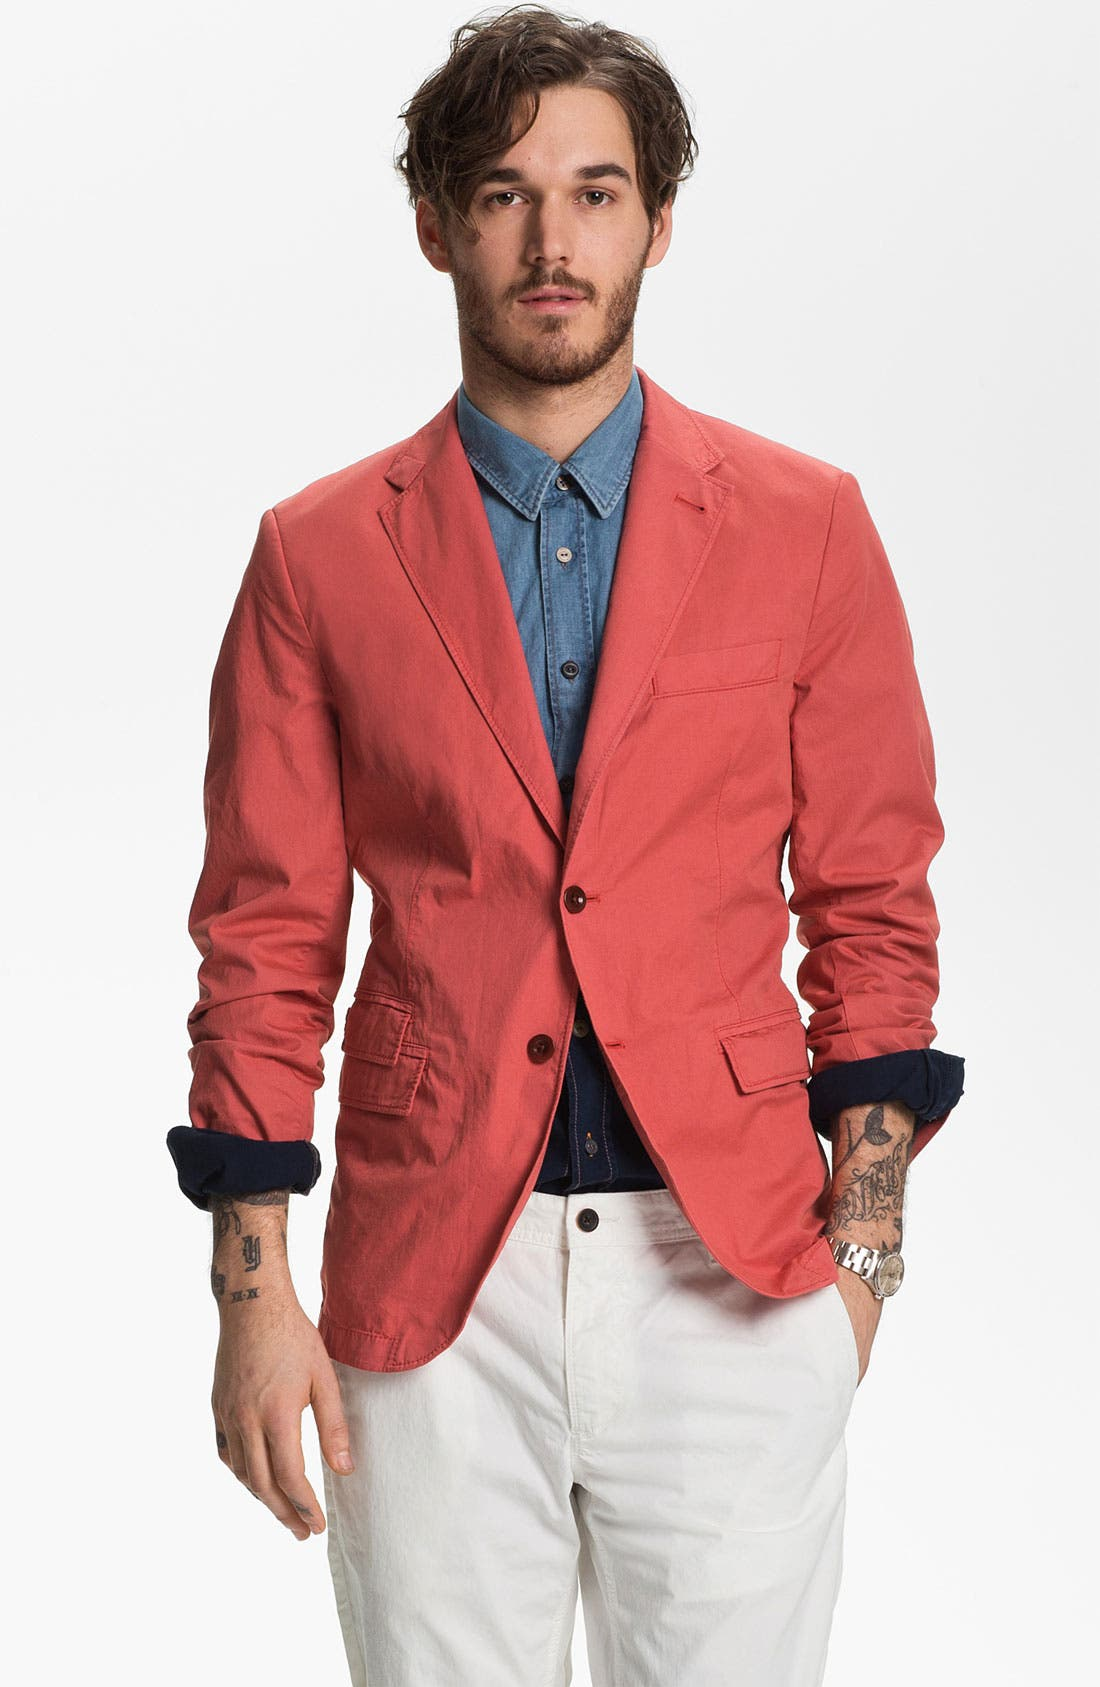 Alternate Image 1 Selected - BOSS Orange 'Benne' Sportcoat